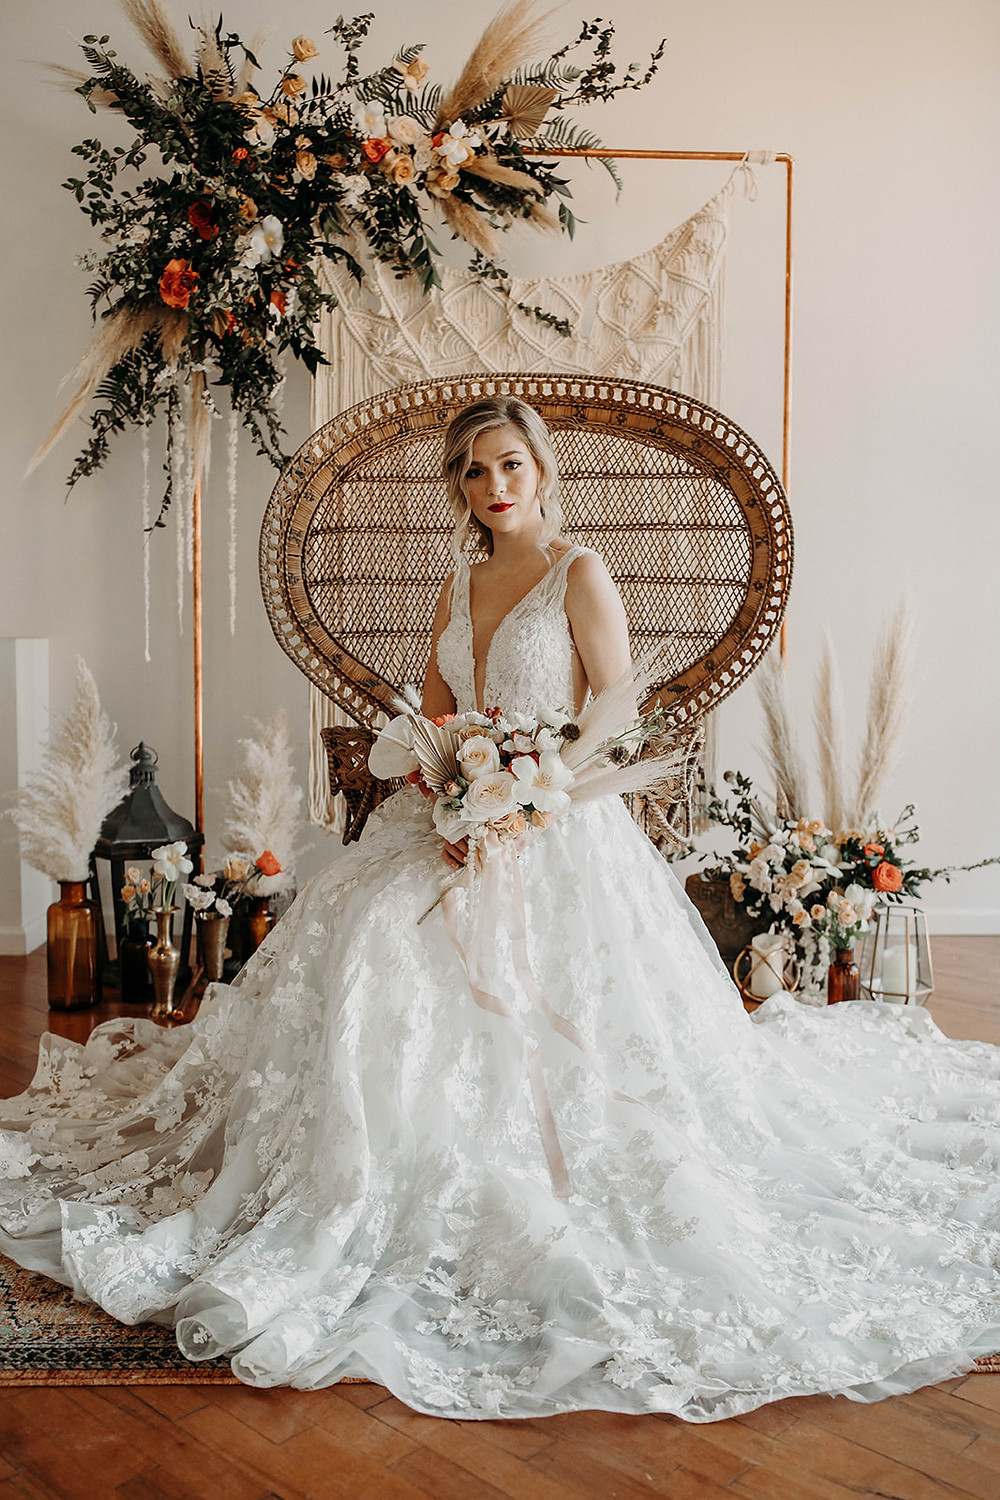 Bride posed on peacock chair in front of macrame hanging on copper arbor